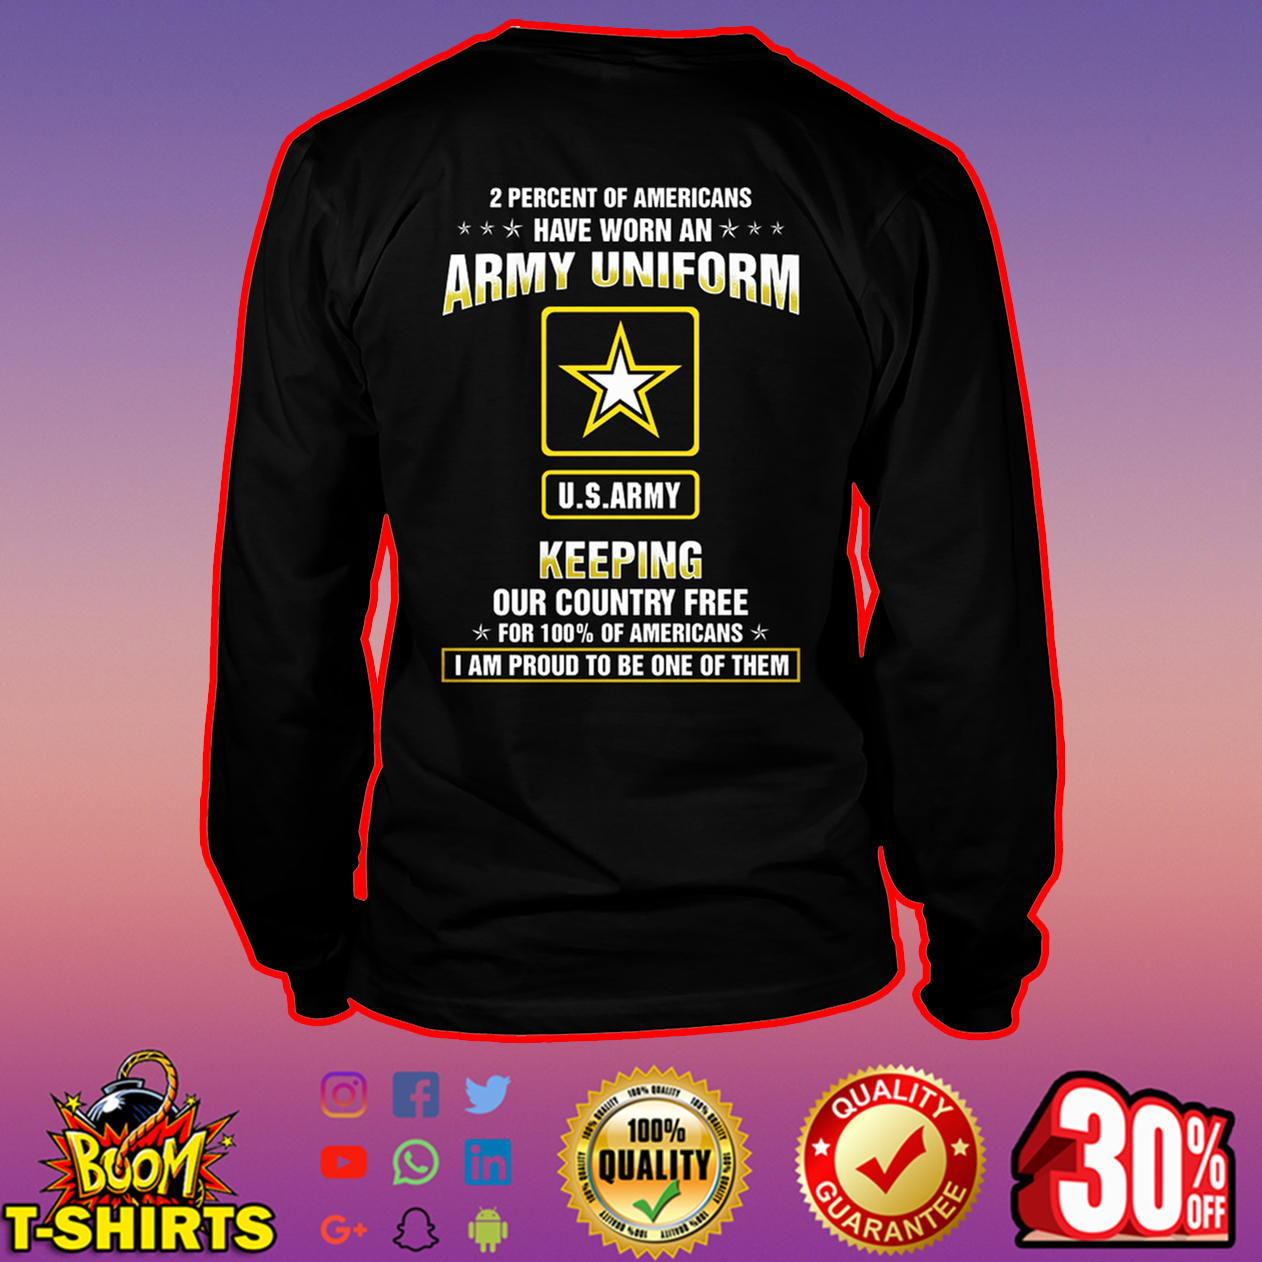 US Army 2 Percent of Americans have worn an Army uniform long sleeve tee